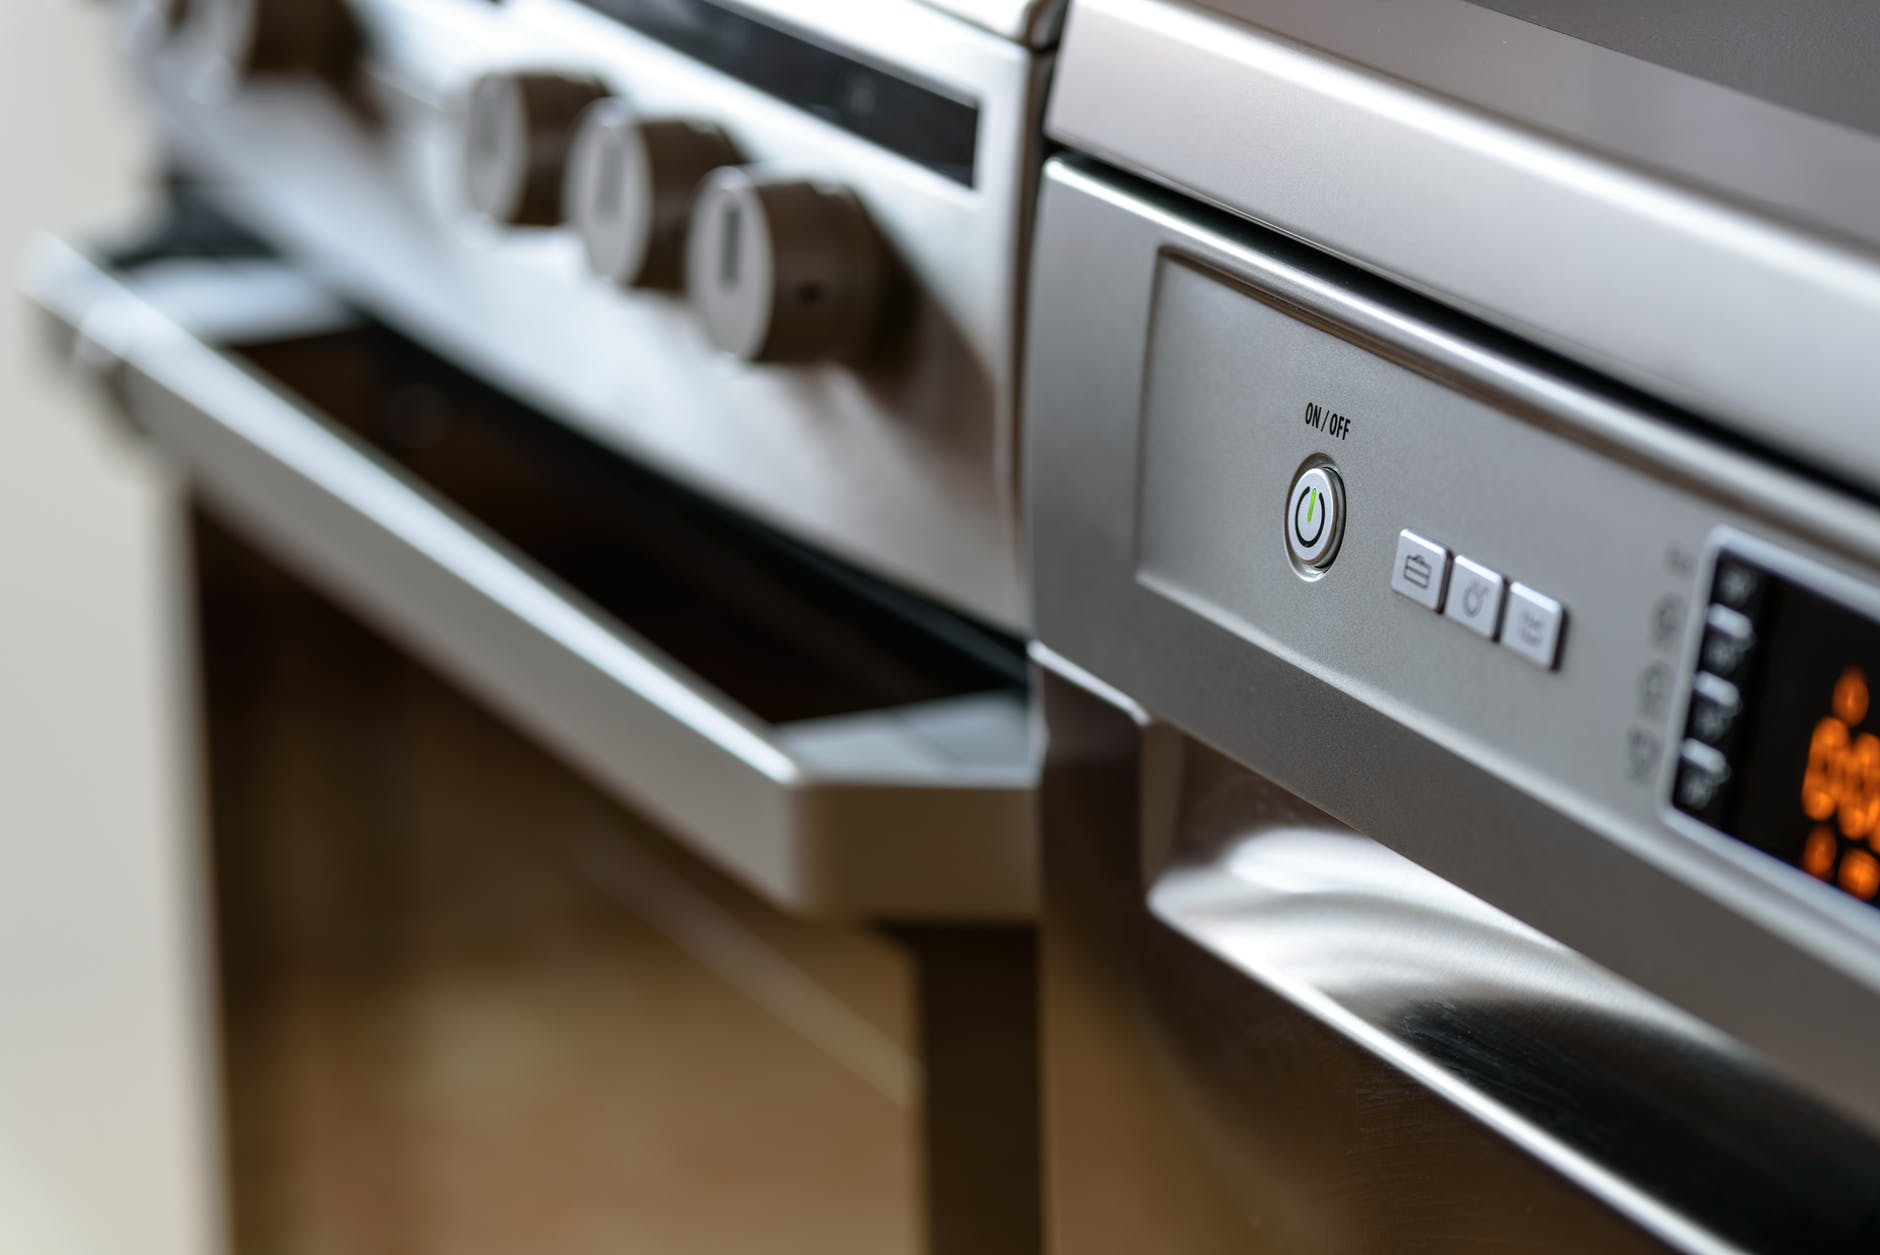 close up shot of oven